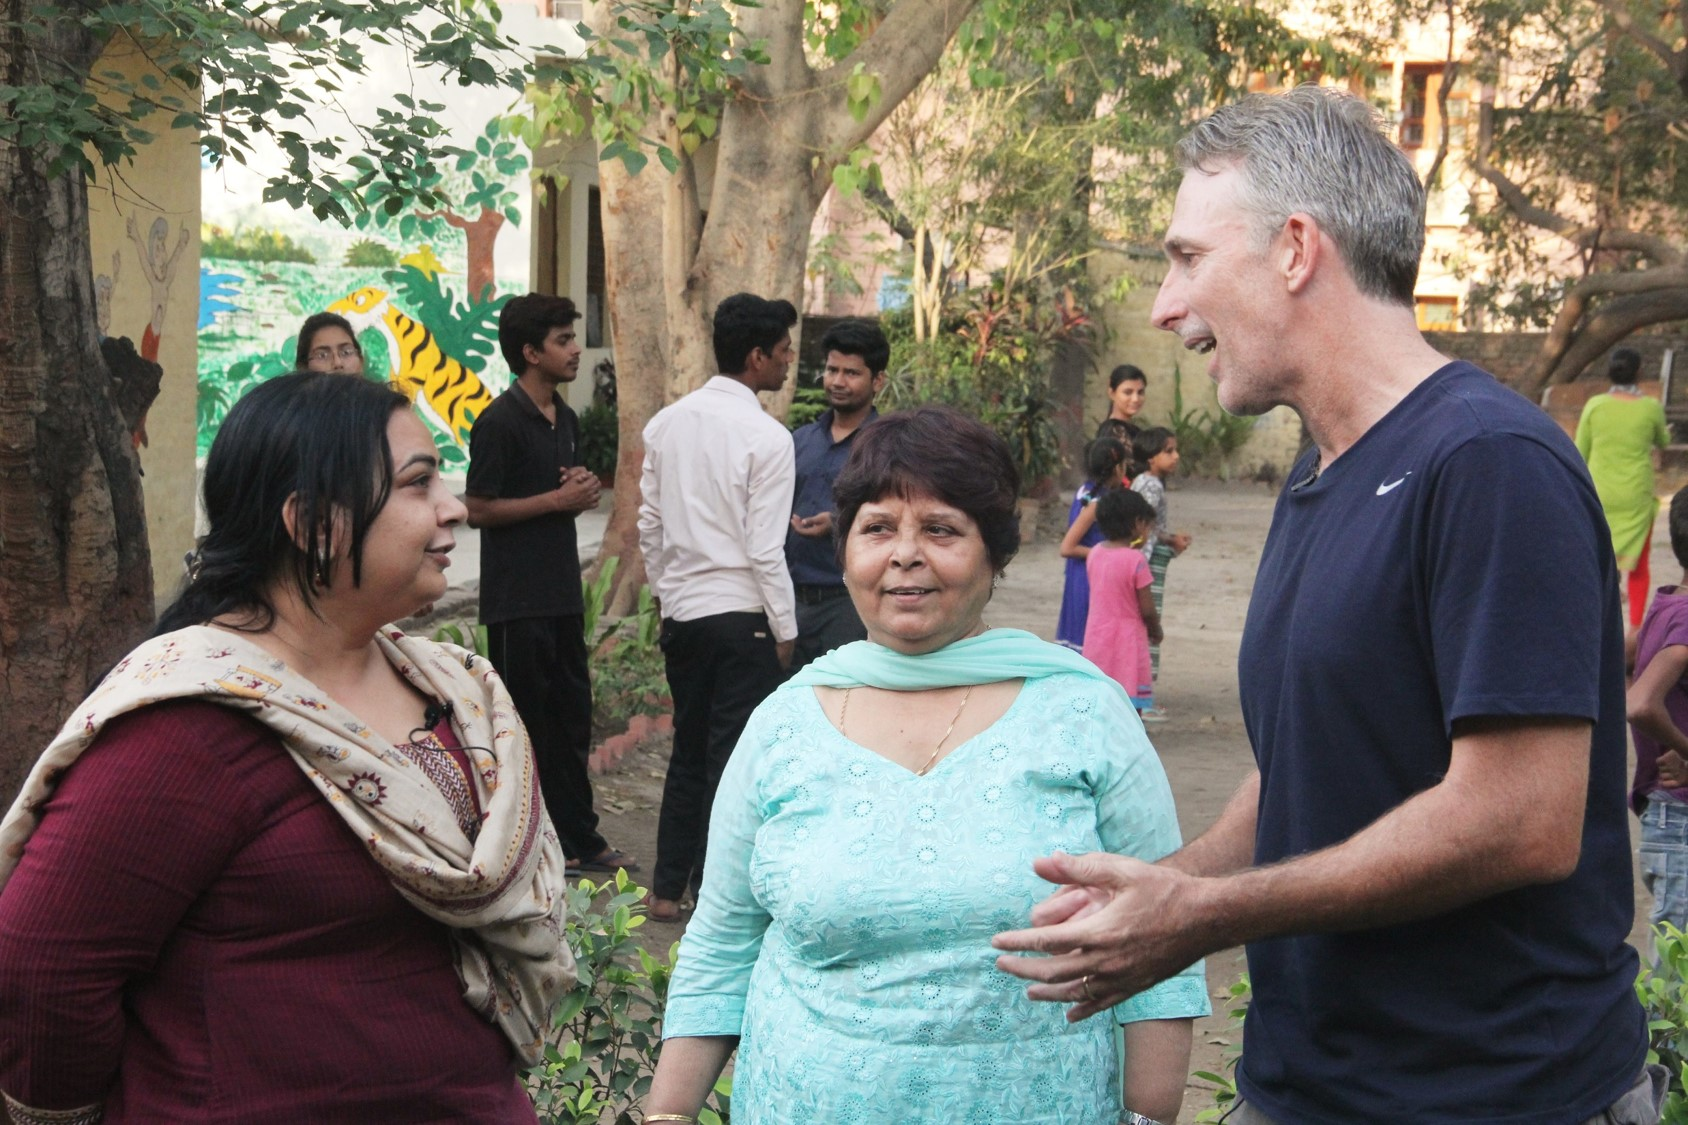 Damien interacting with the Asha team members.